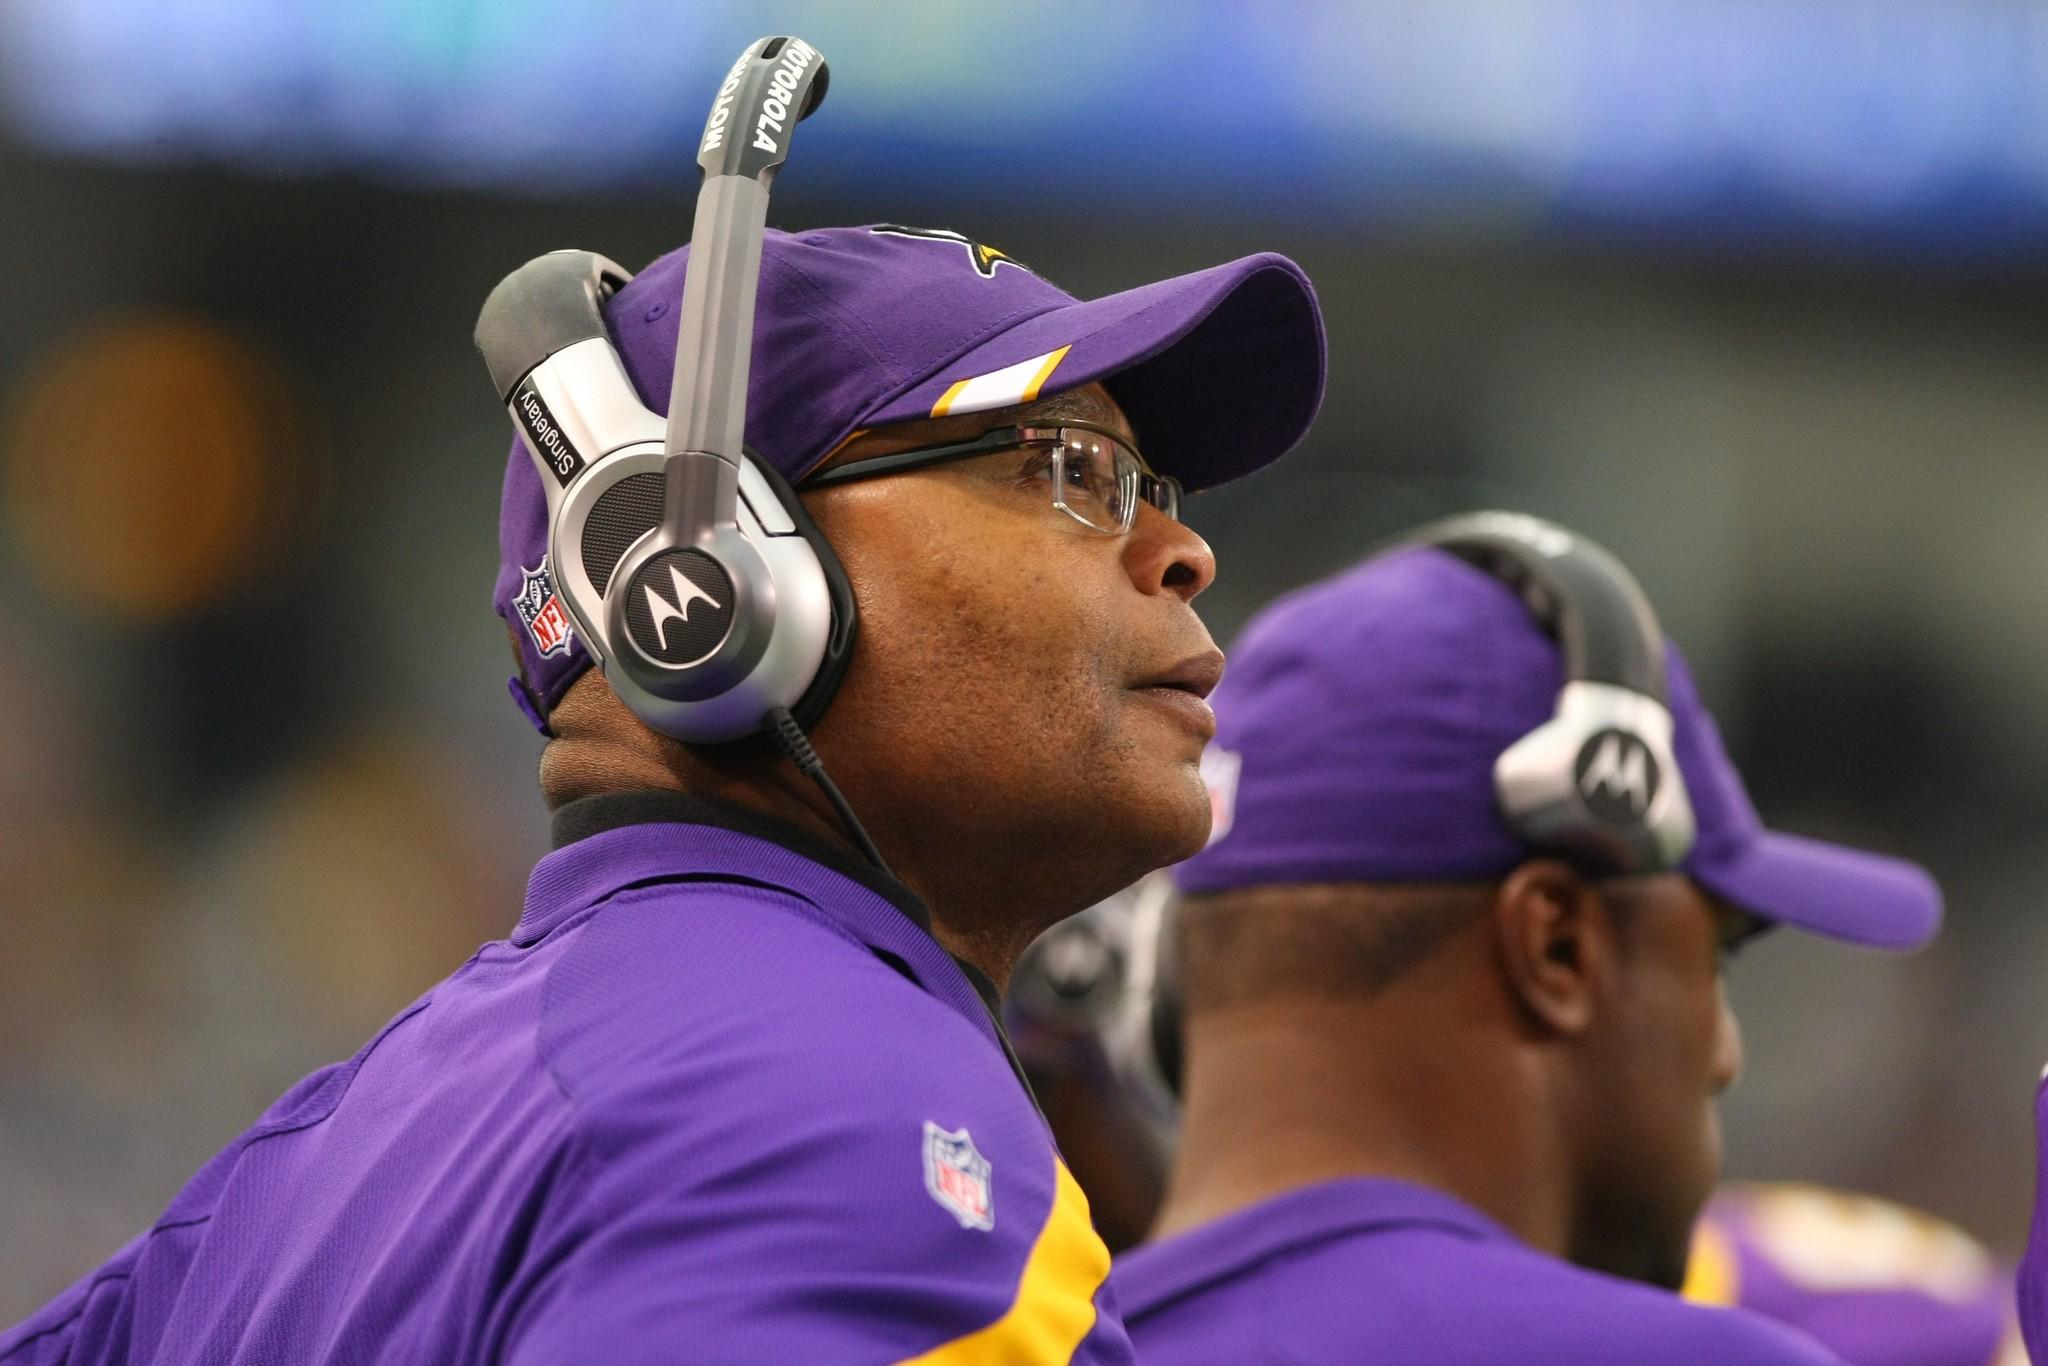 Vikings assistant coach Mike Singletary against the Raiders at the Metrodome.